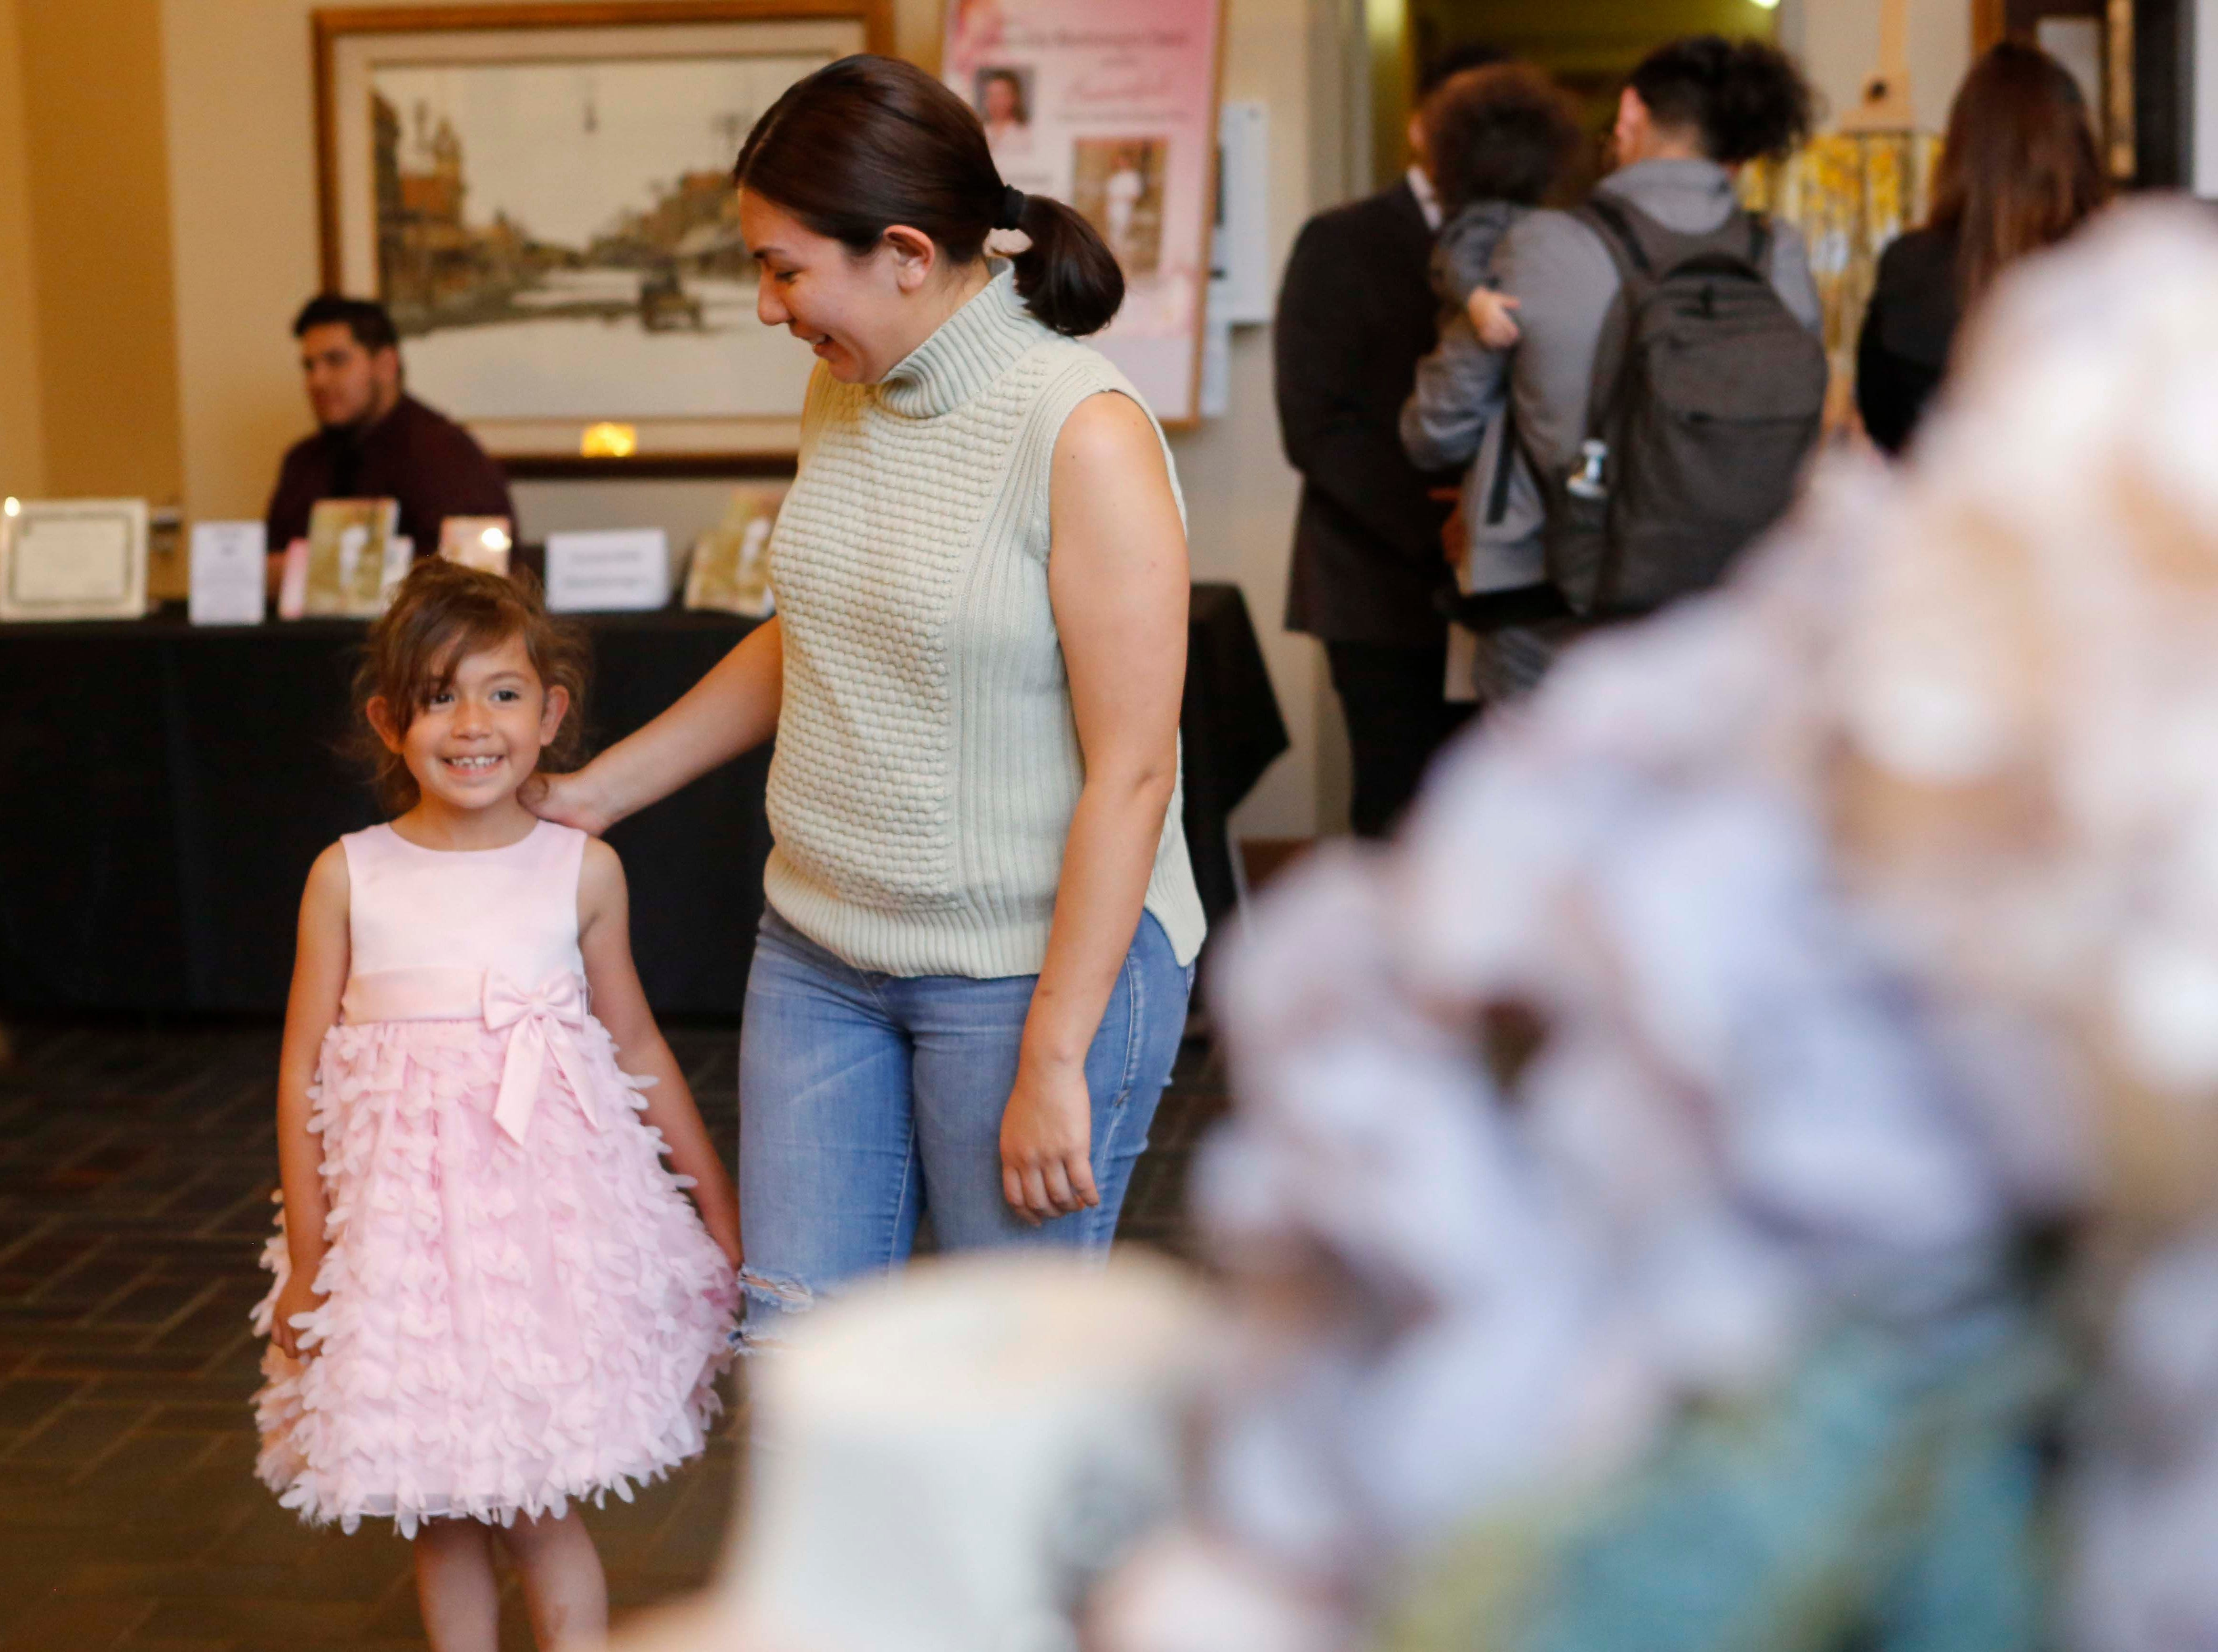 A little girl with her mom gets excited as they approach a bridal booth during the 12th annual Noche Bohemia at Sherwood Hall on Saturday, April 27, 2019 in Salinas, Calif.